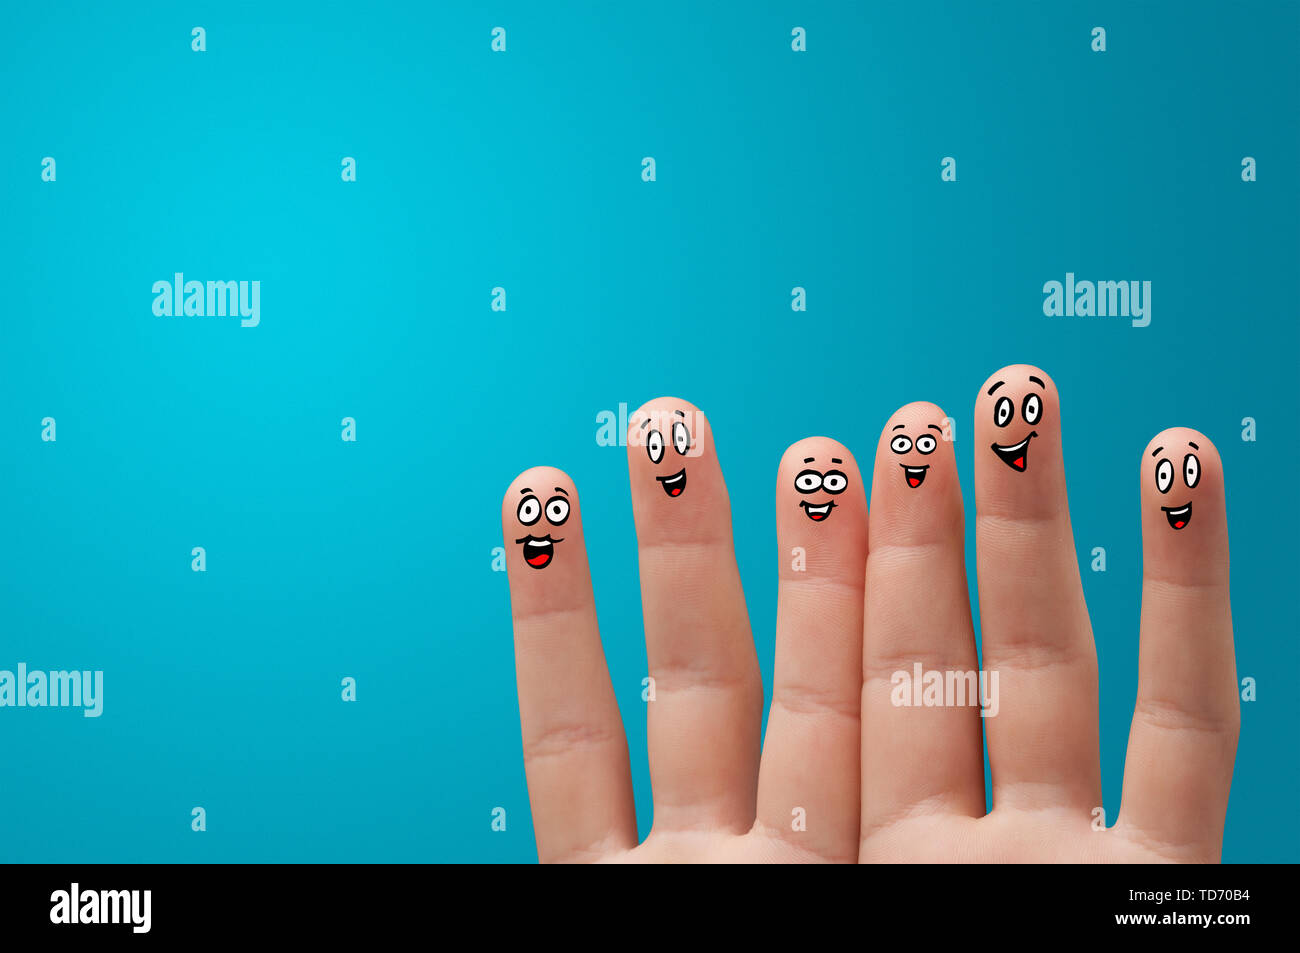 Happy face fingers hug each other  - Stock Image